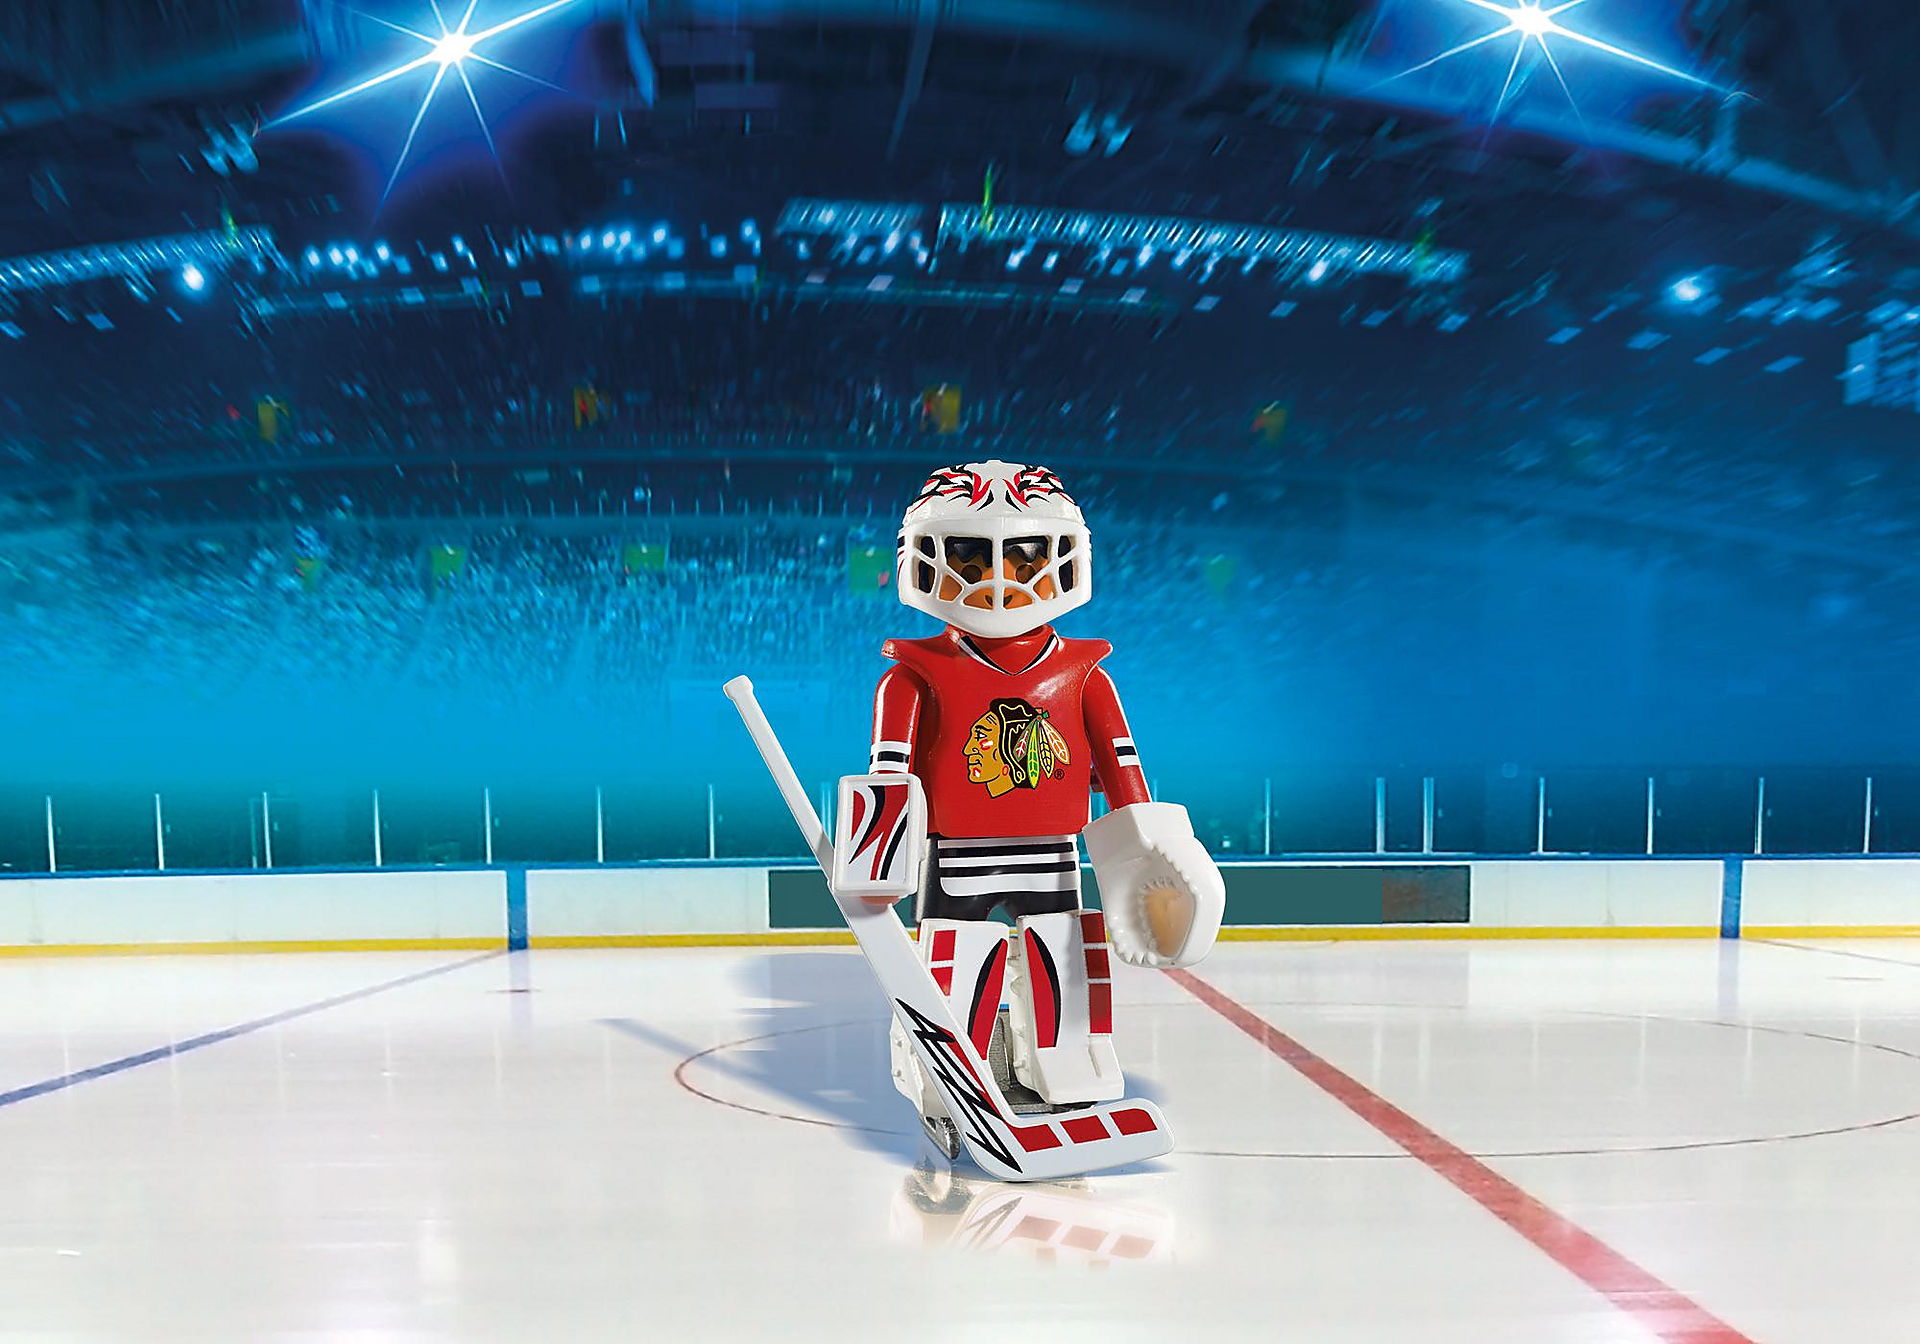 5074 NHL® Chicago Blackhawks® Goalie zoom image1